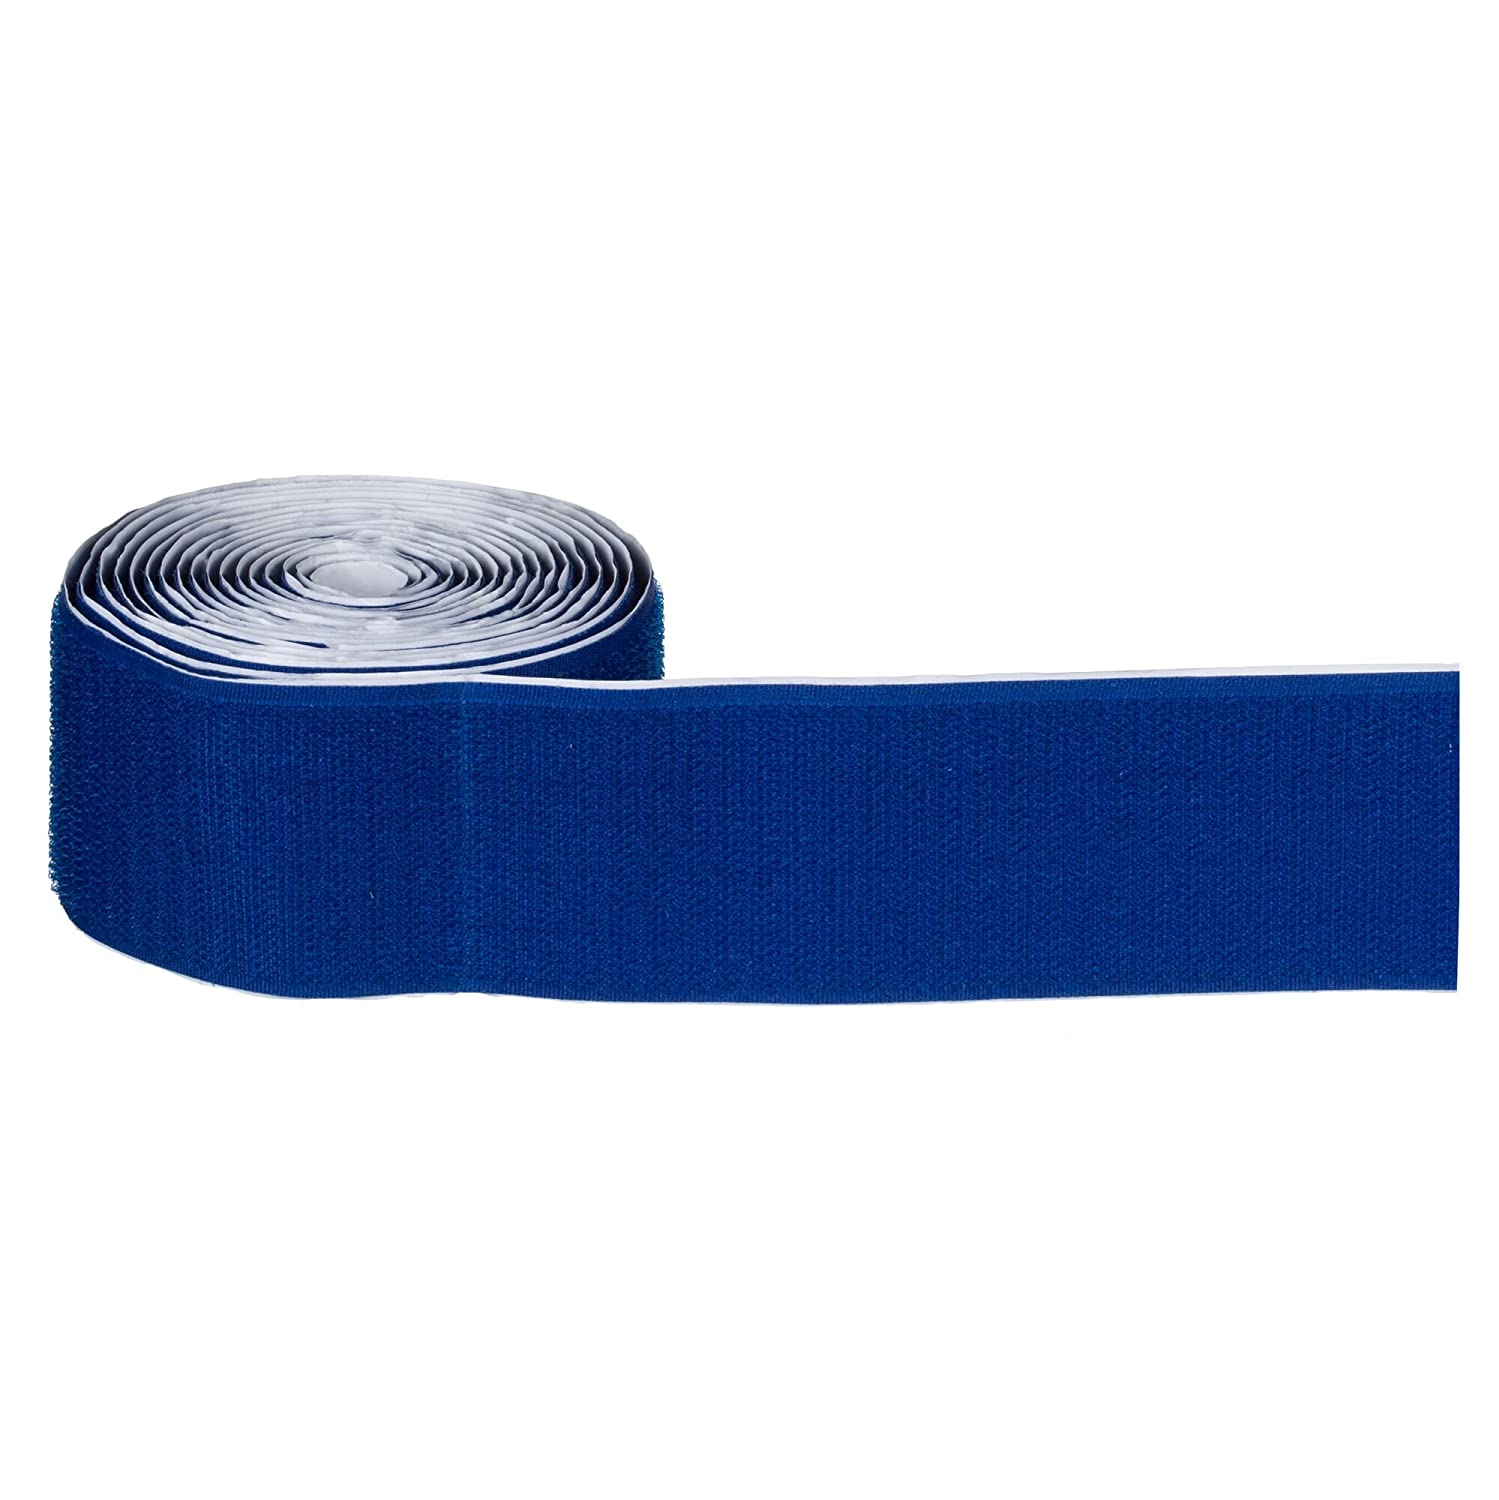 The Limpet - Hook Only Industrial Strength Adhesive Guitar Pedal Board Tape (3 Meters, 2